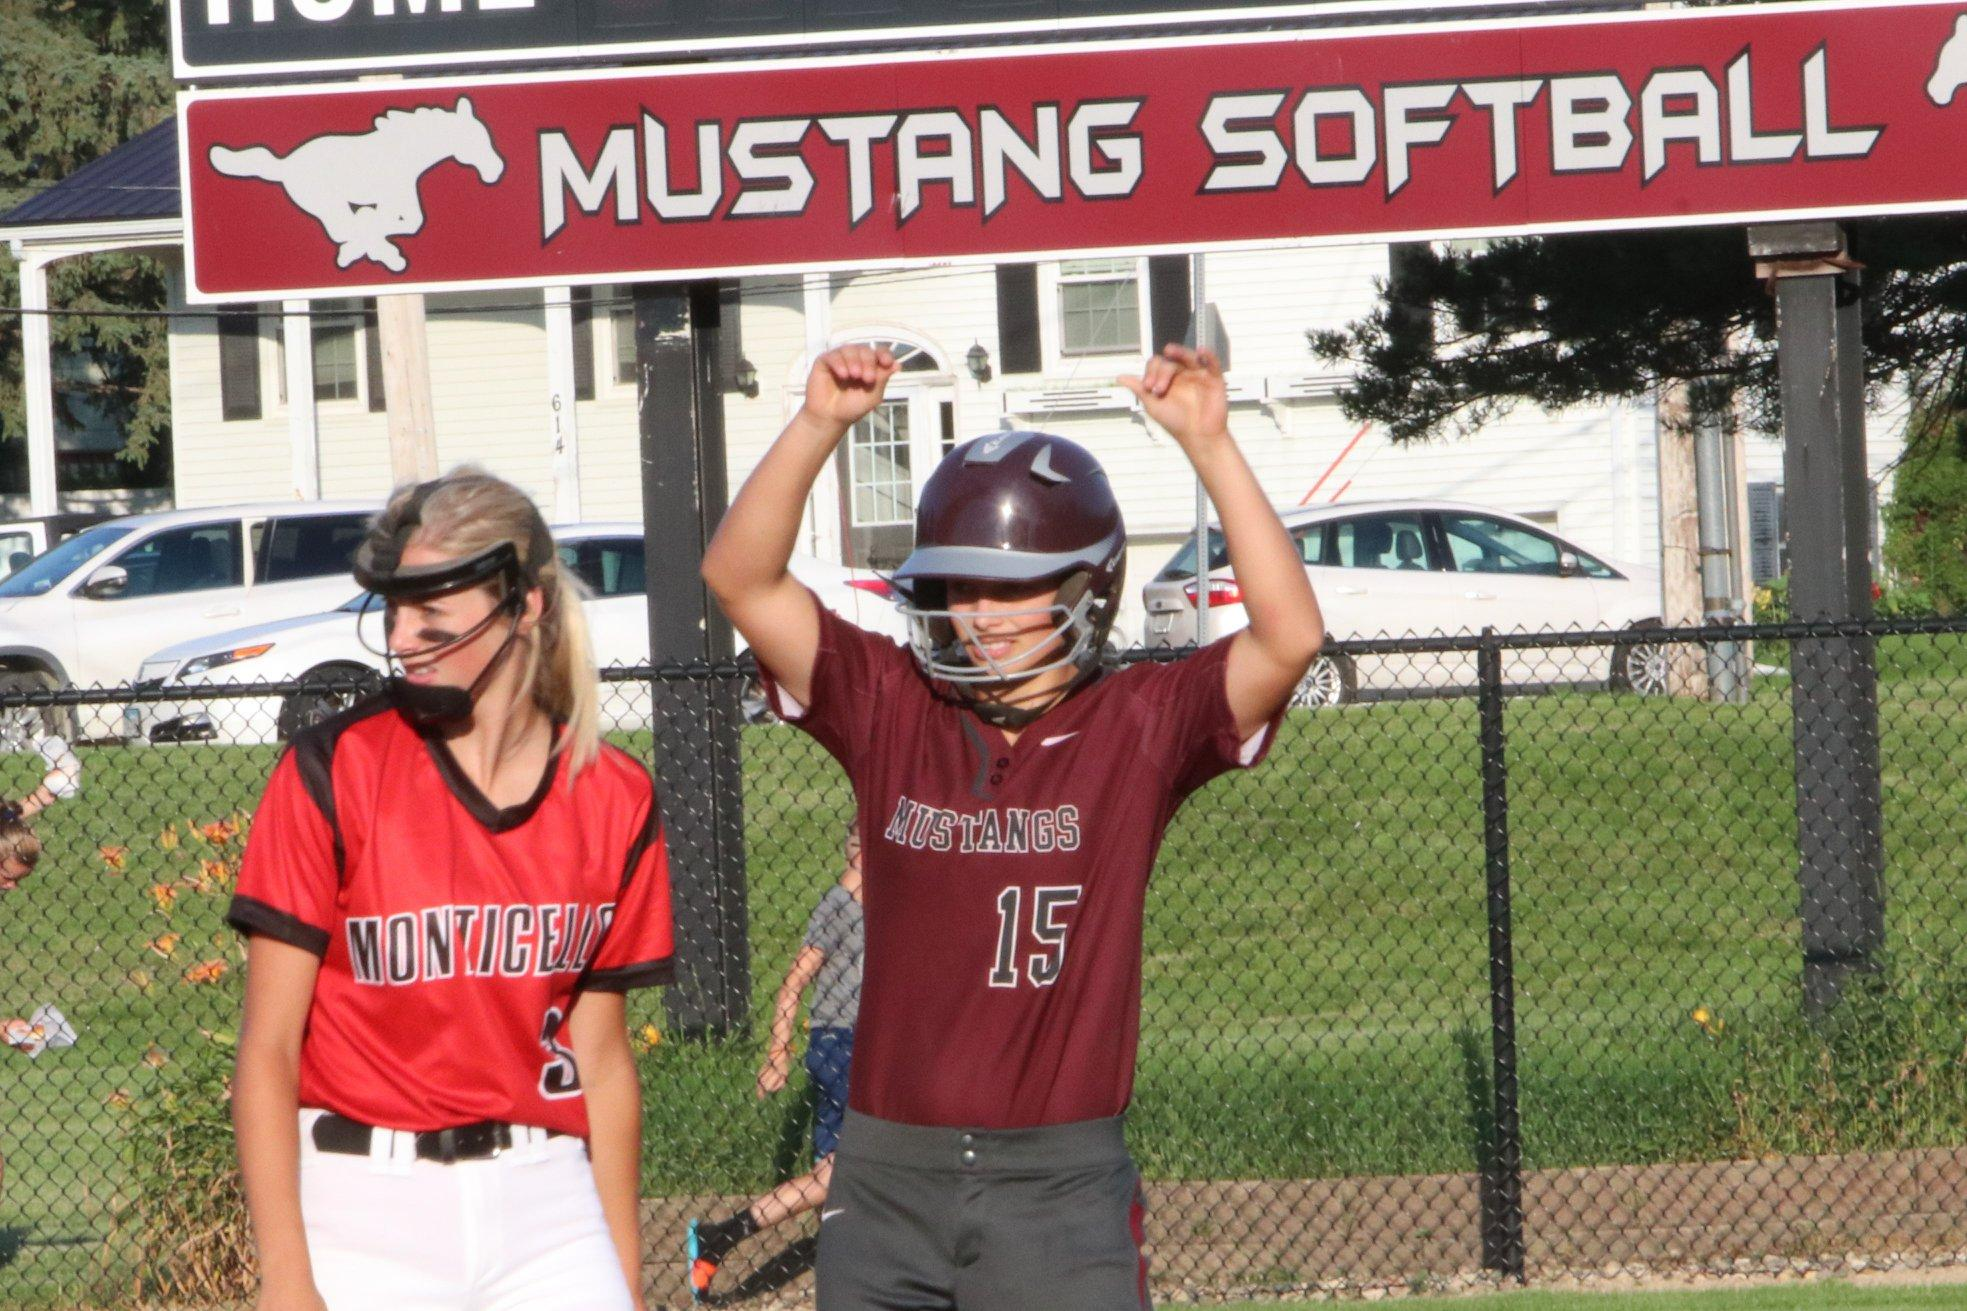 Mustangs Beat Monticello to Advance to Districts